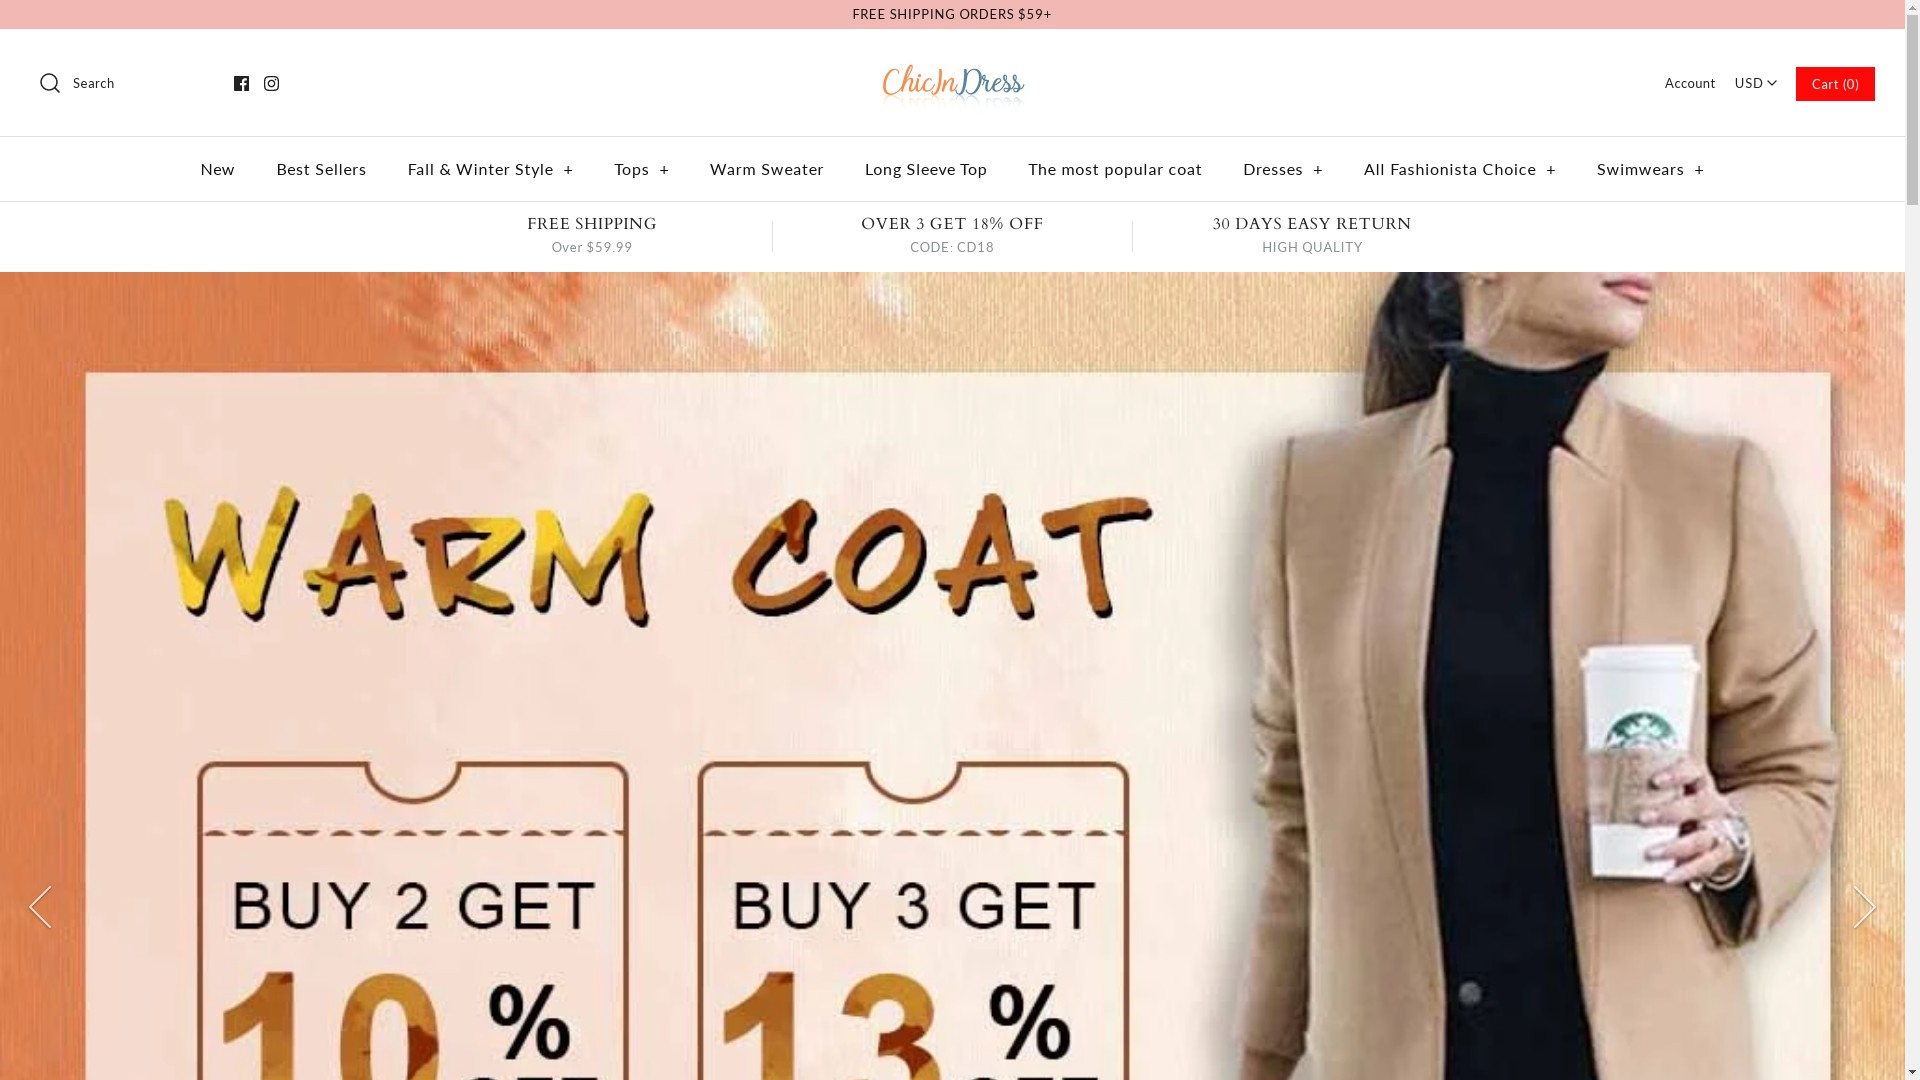 Is Chicindress a Scam? Review of the Online Store